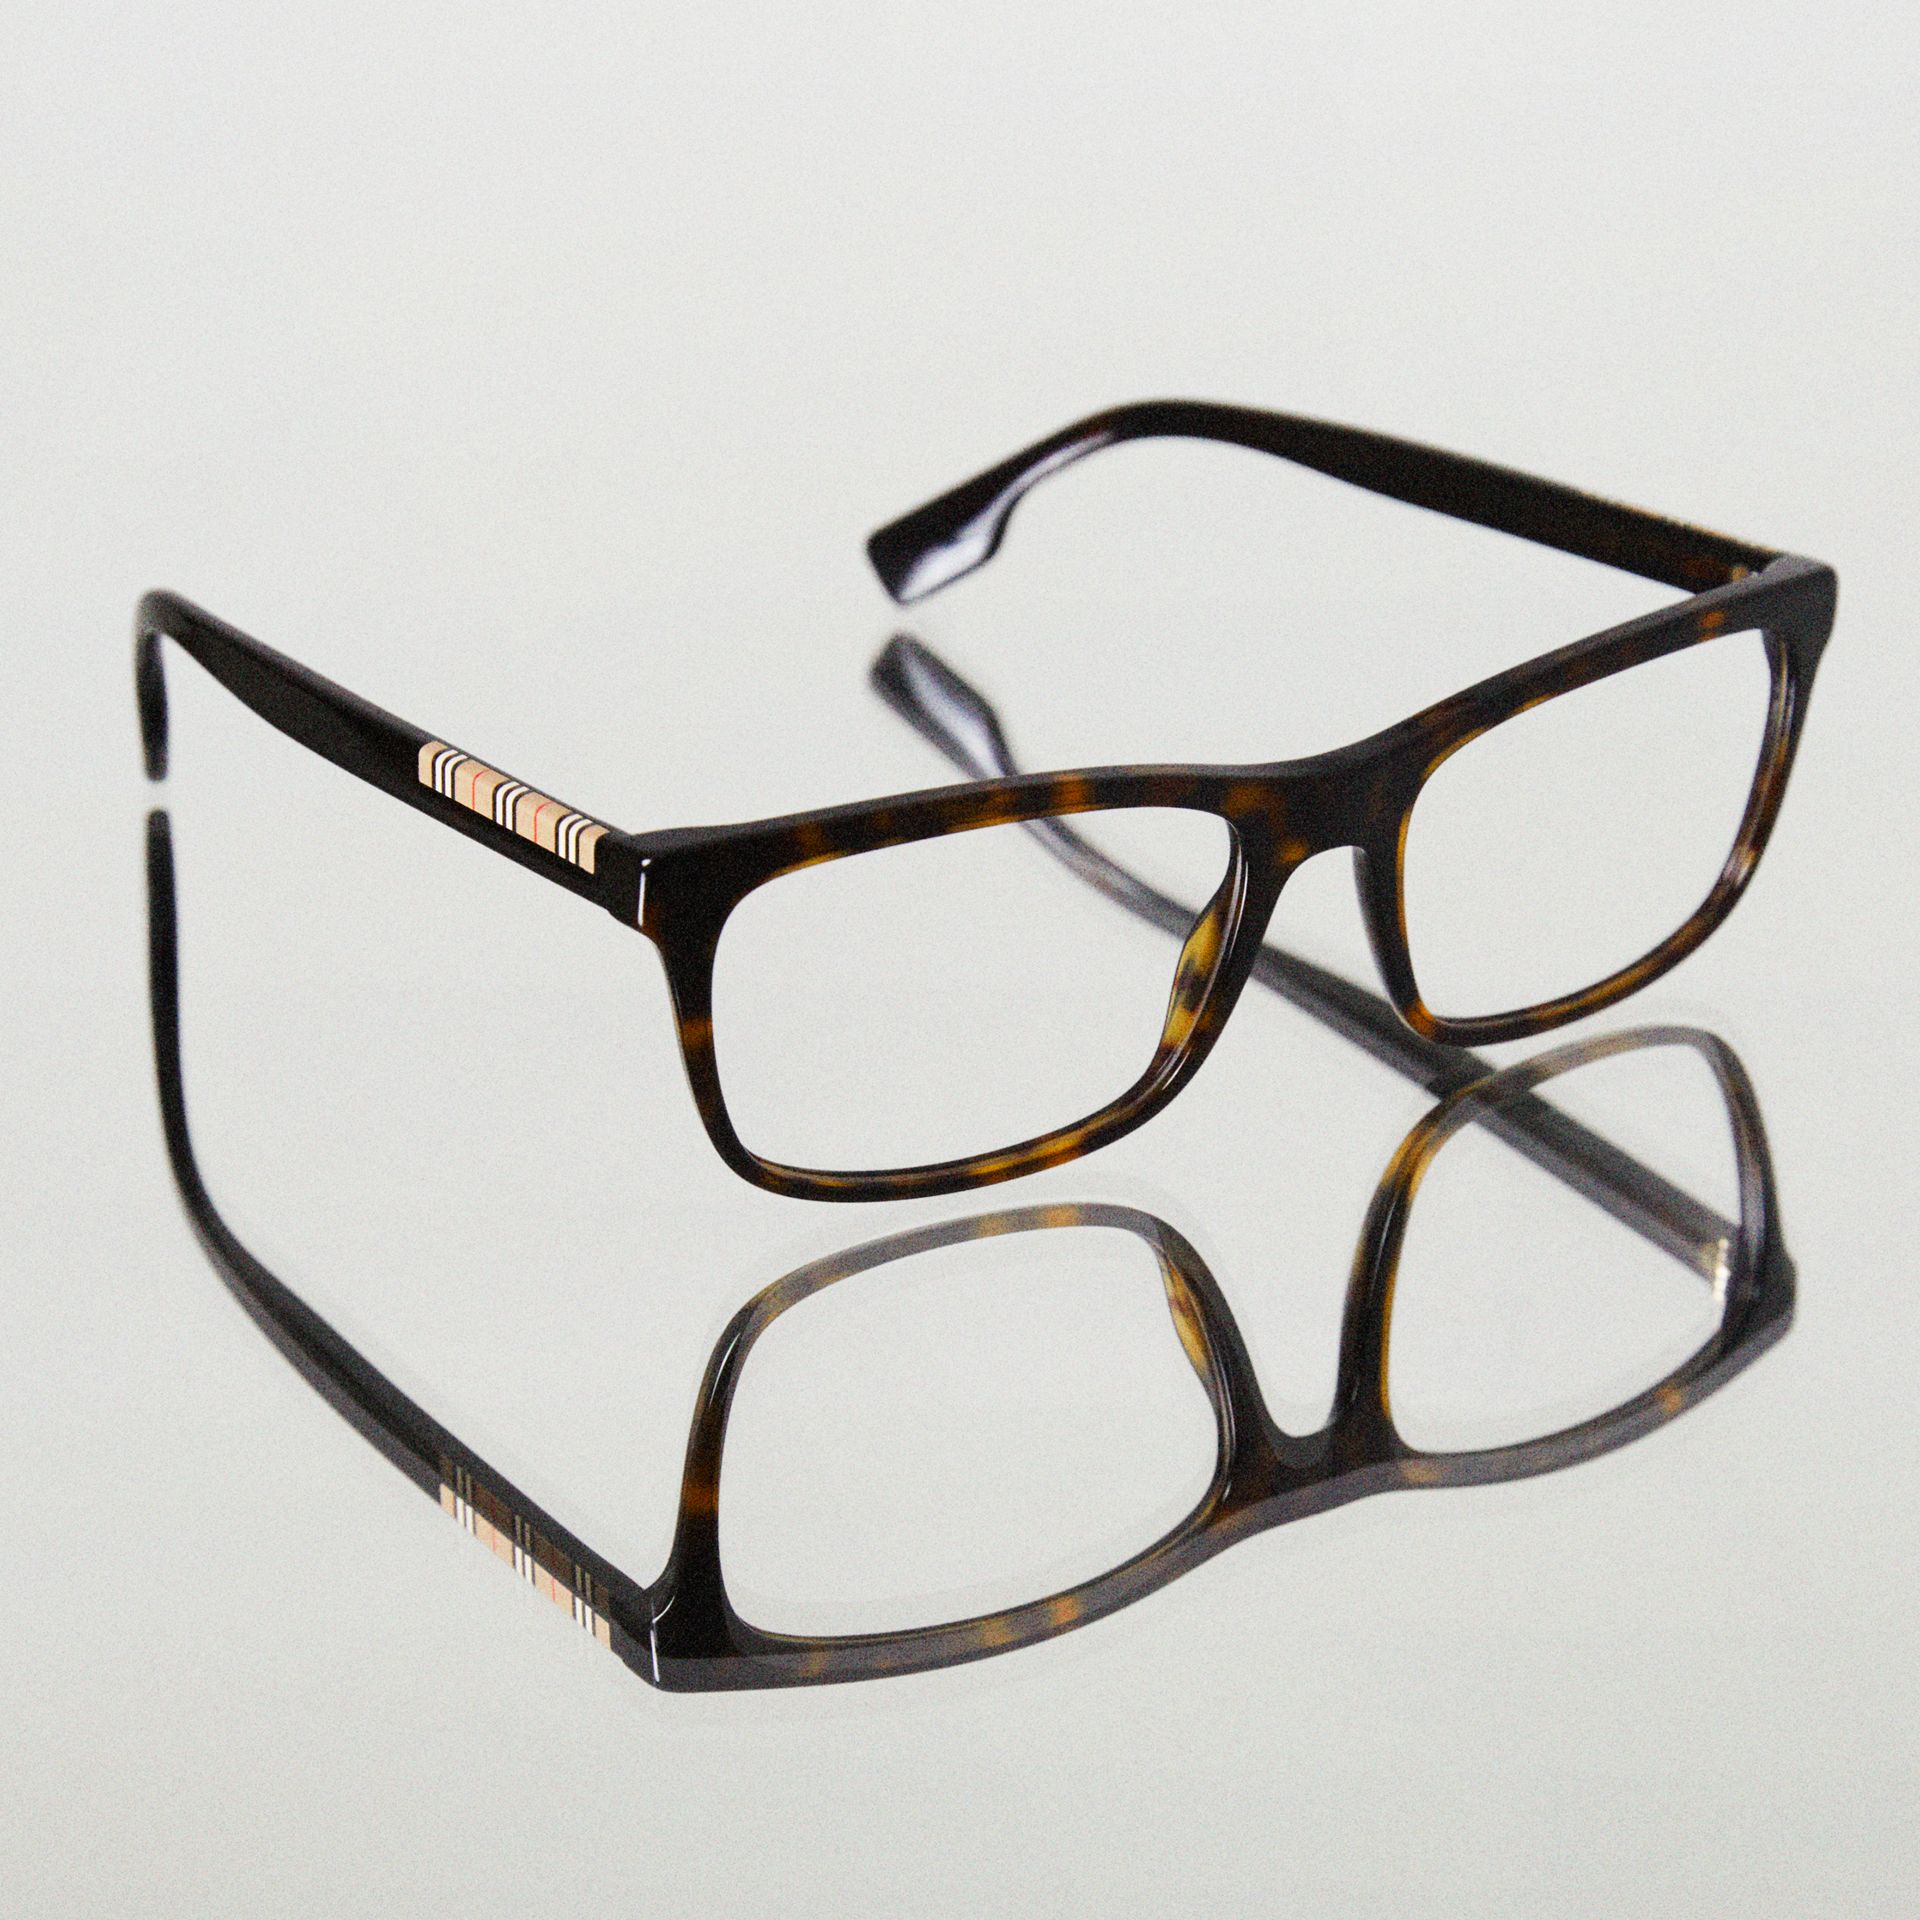 Icon Stripe Detail Rectangular Optical Frames in Tortoiseshell - Men | Burberry - gallery image 5